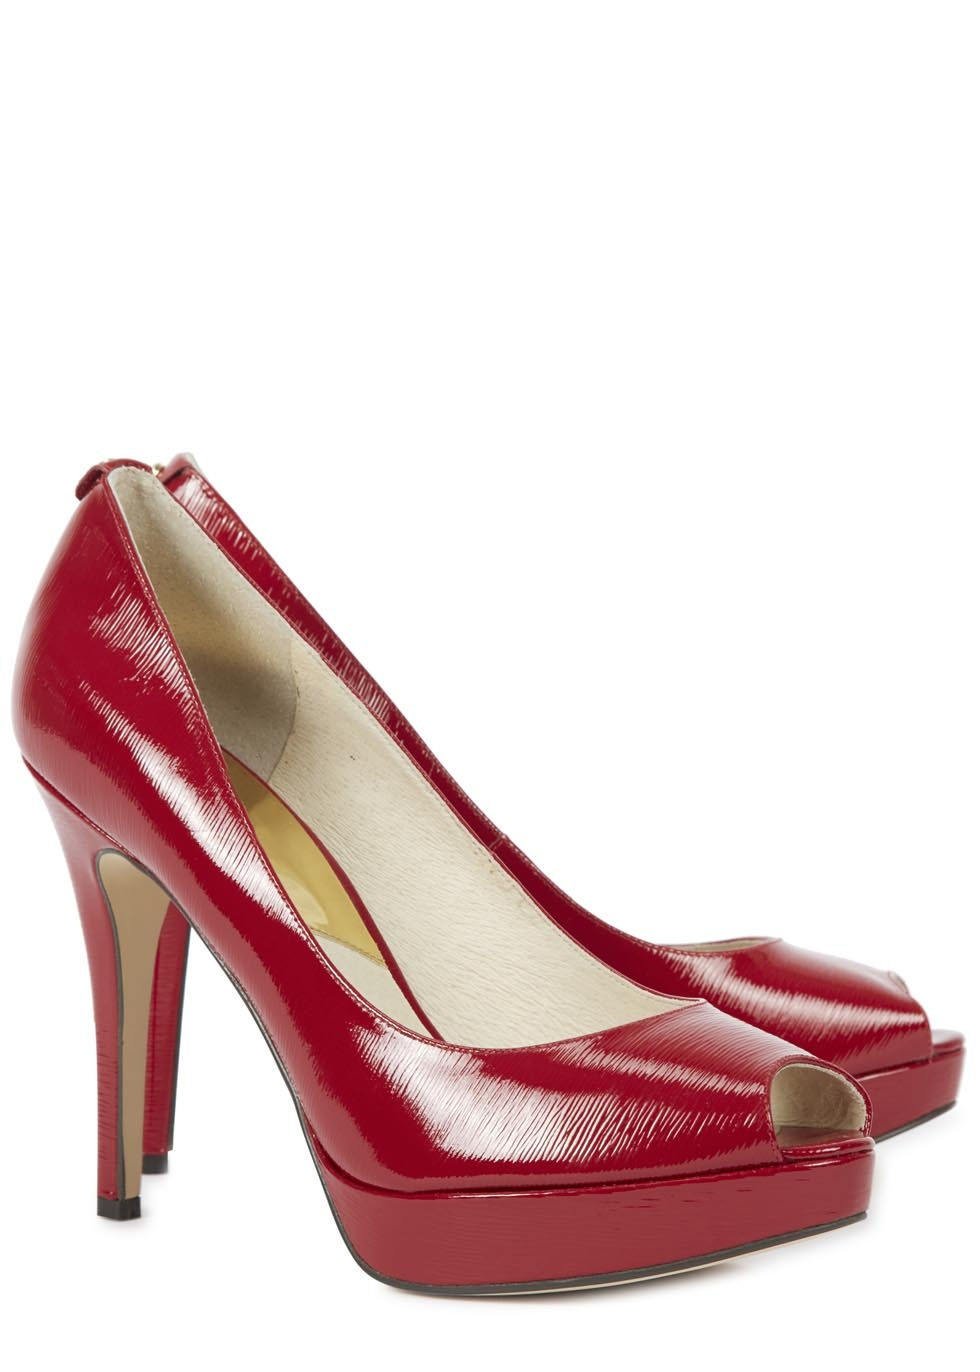 Michael Kors Red Court Shoes